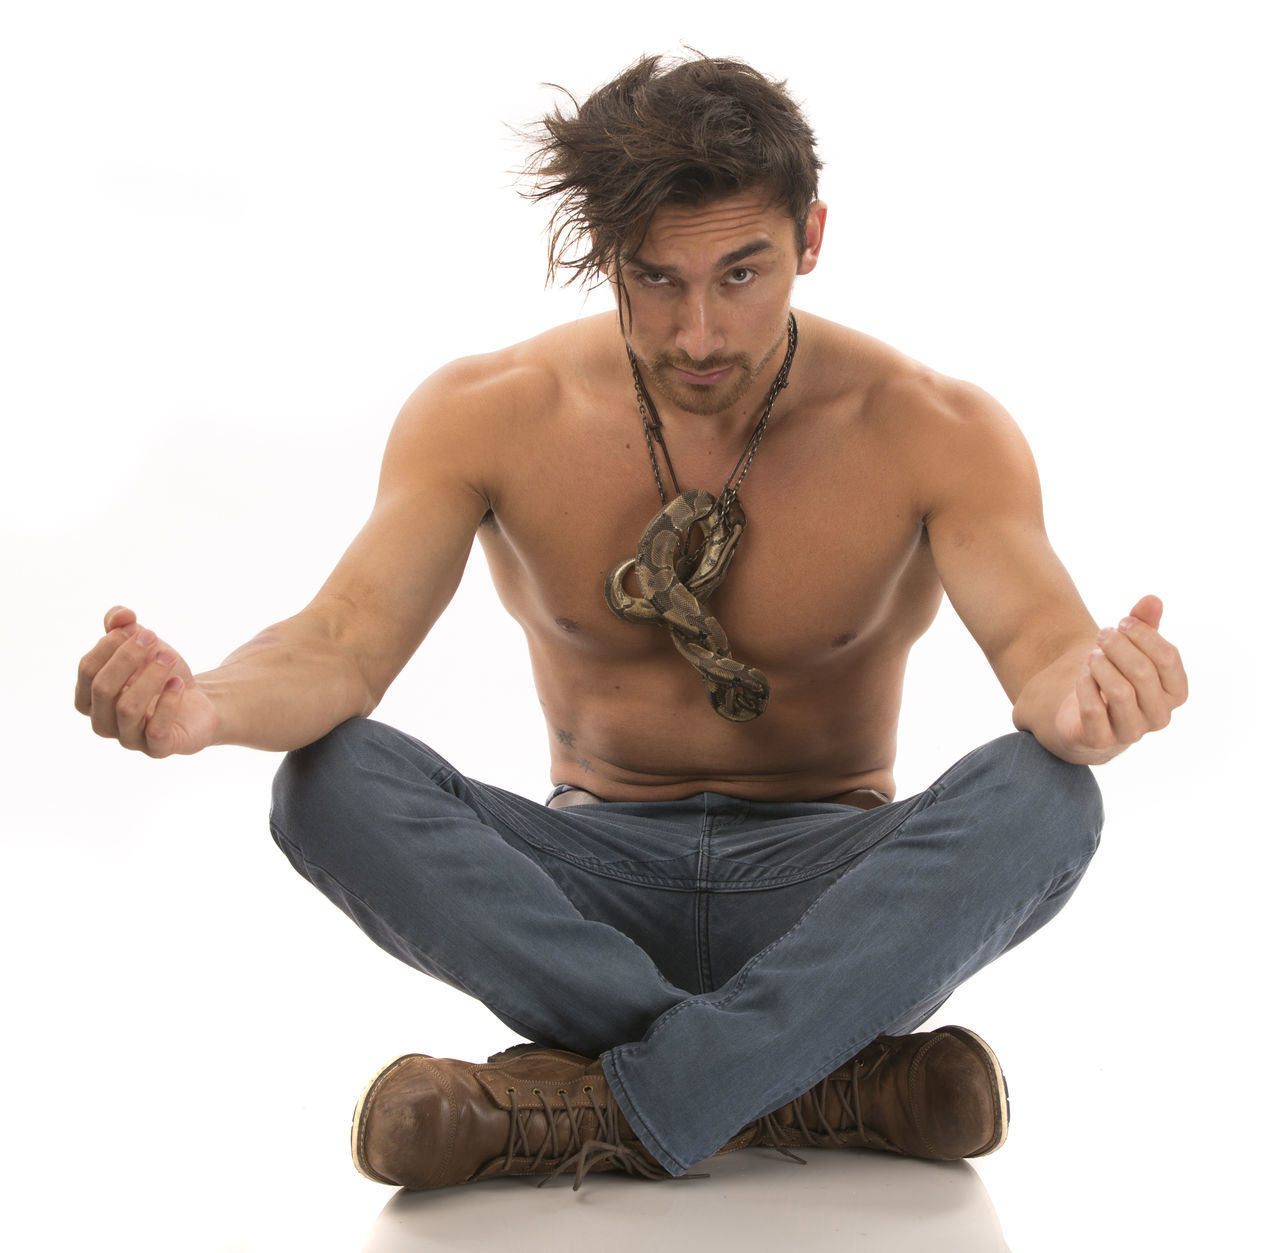 Shirtless Male squatting with snake Cross-legged Cut Out Day Exercising Front View Full Length Indoors  Lifestyles Looking At Camera Men Muscular Build One Person Pet Portrait Real People Reptile Shirtless Sitting Snake Squat Studio Shot White Background Yoga Young Adult Young Men